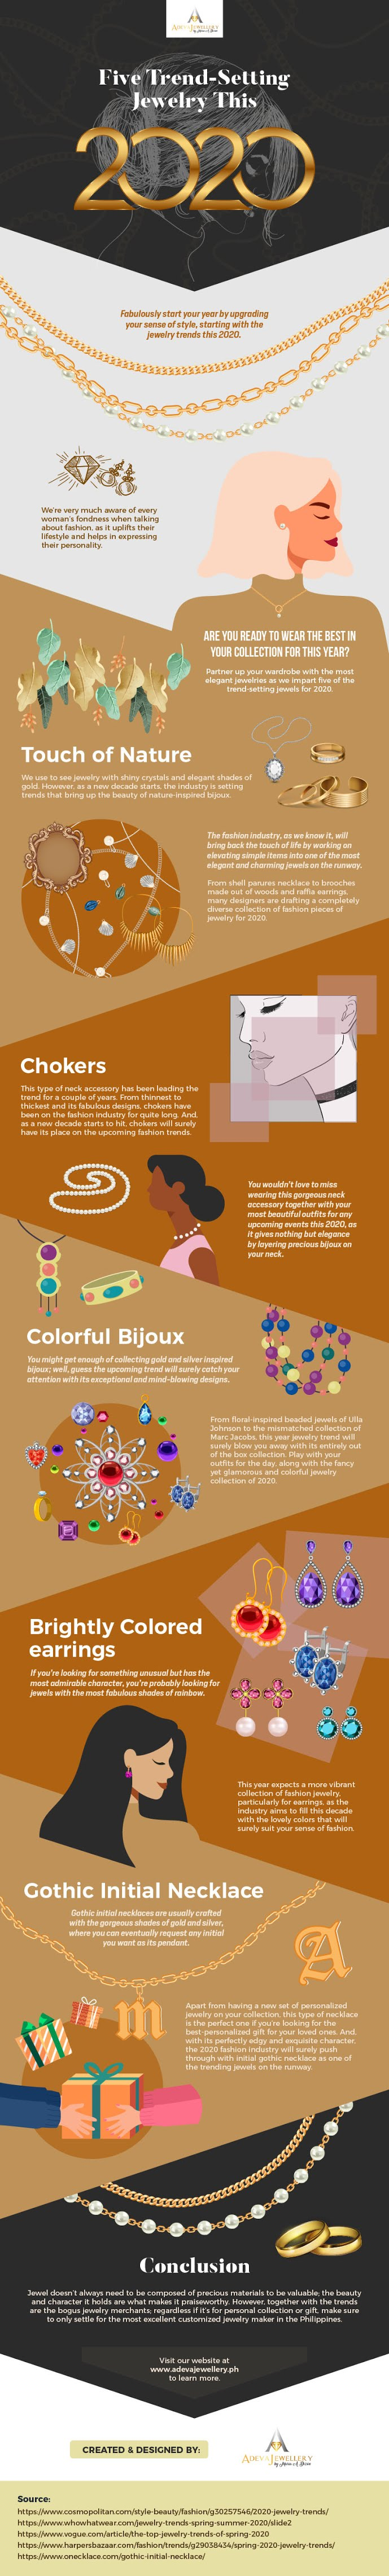 Five Trend-Setting Jewelry Styles in 2020 #infographic